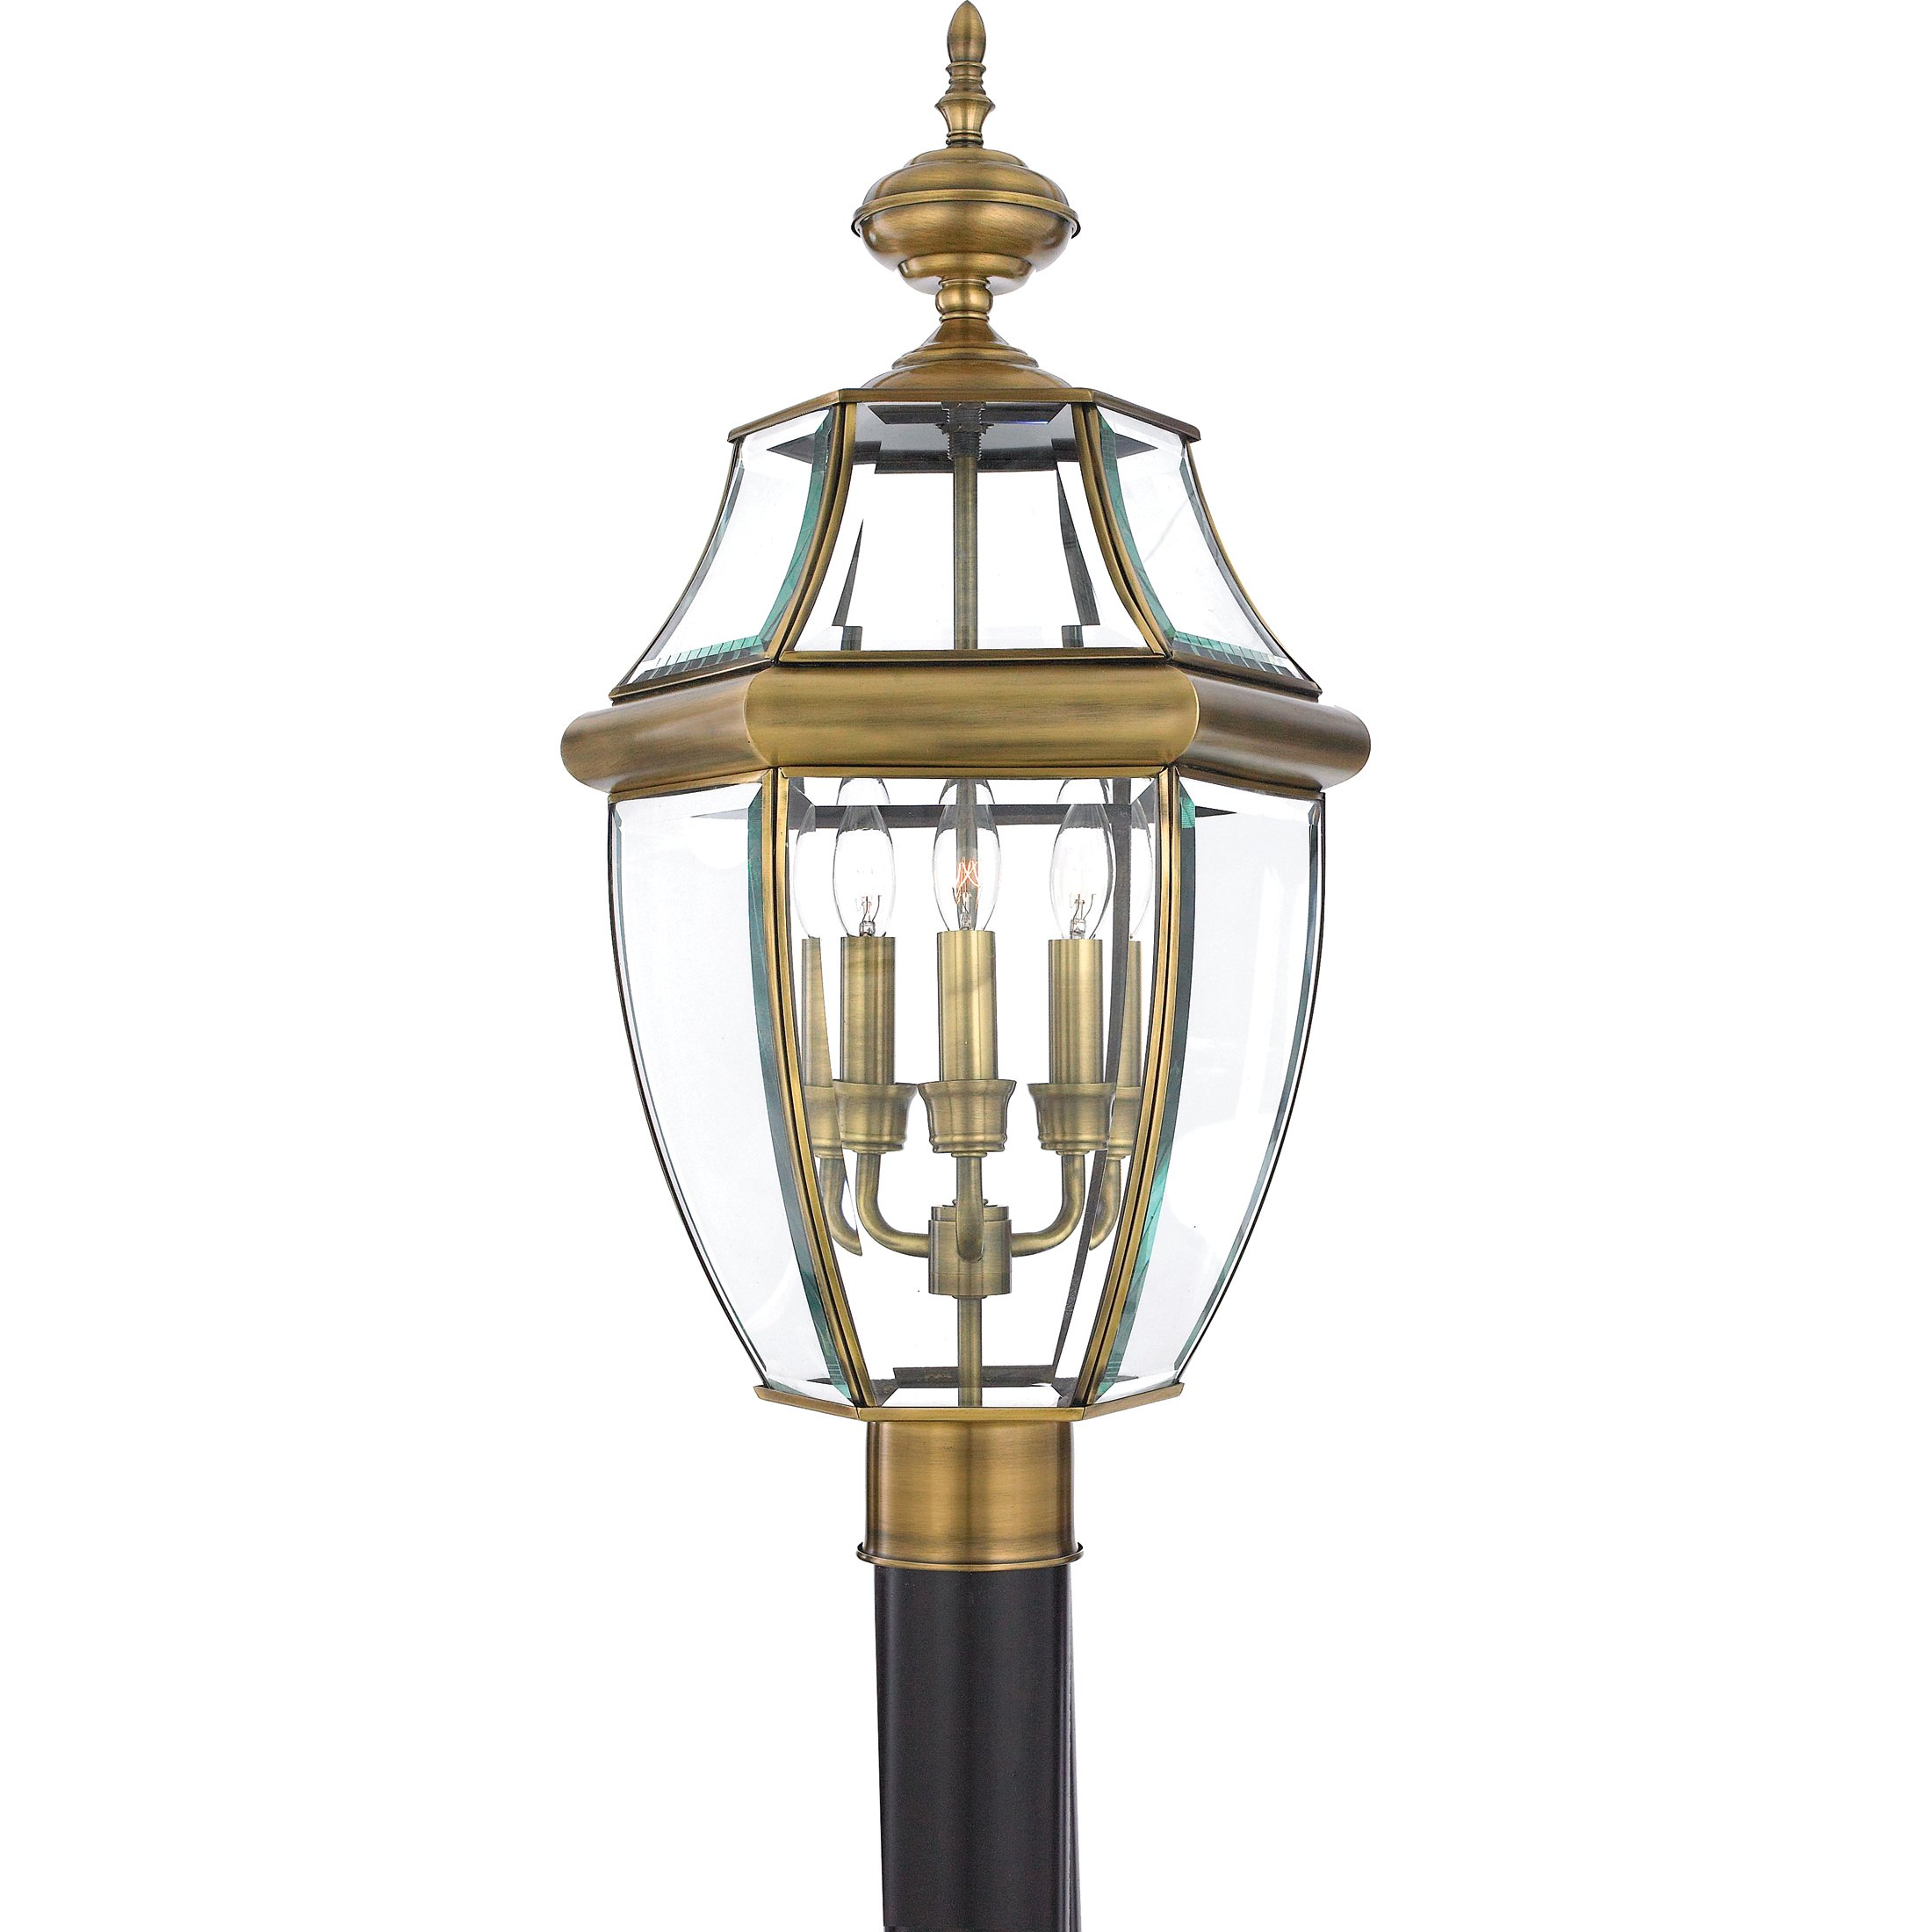 Quoizel NY9043A Newbury 3-Light Outdoor Post Lantern, Antique Brass